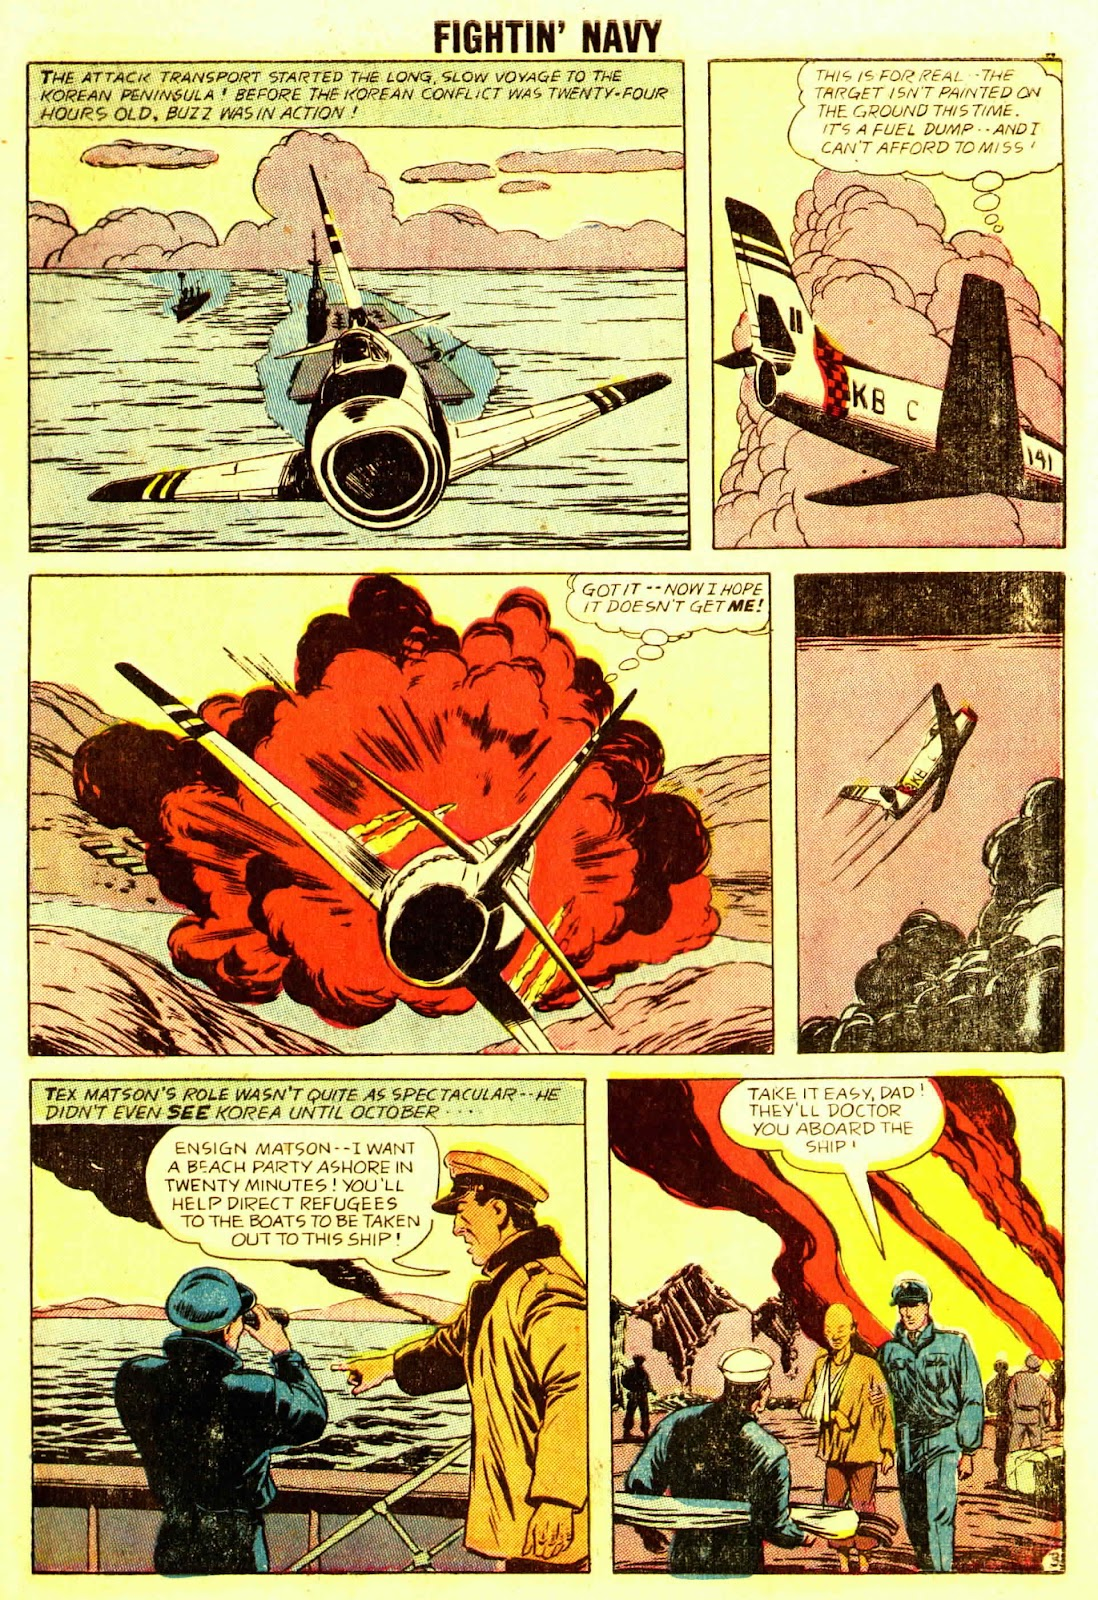 Read online Fightin' Navy comic -  Issue #83 - 13